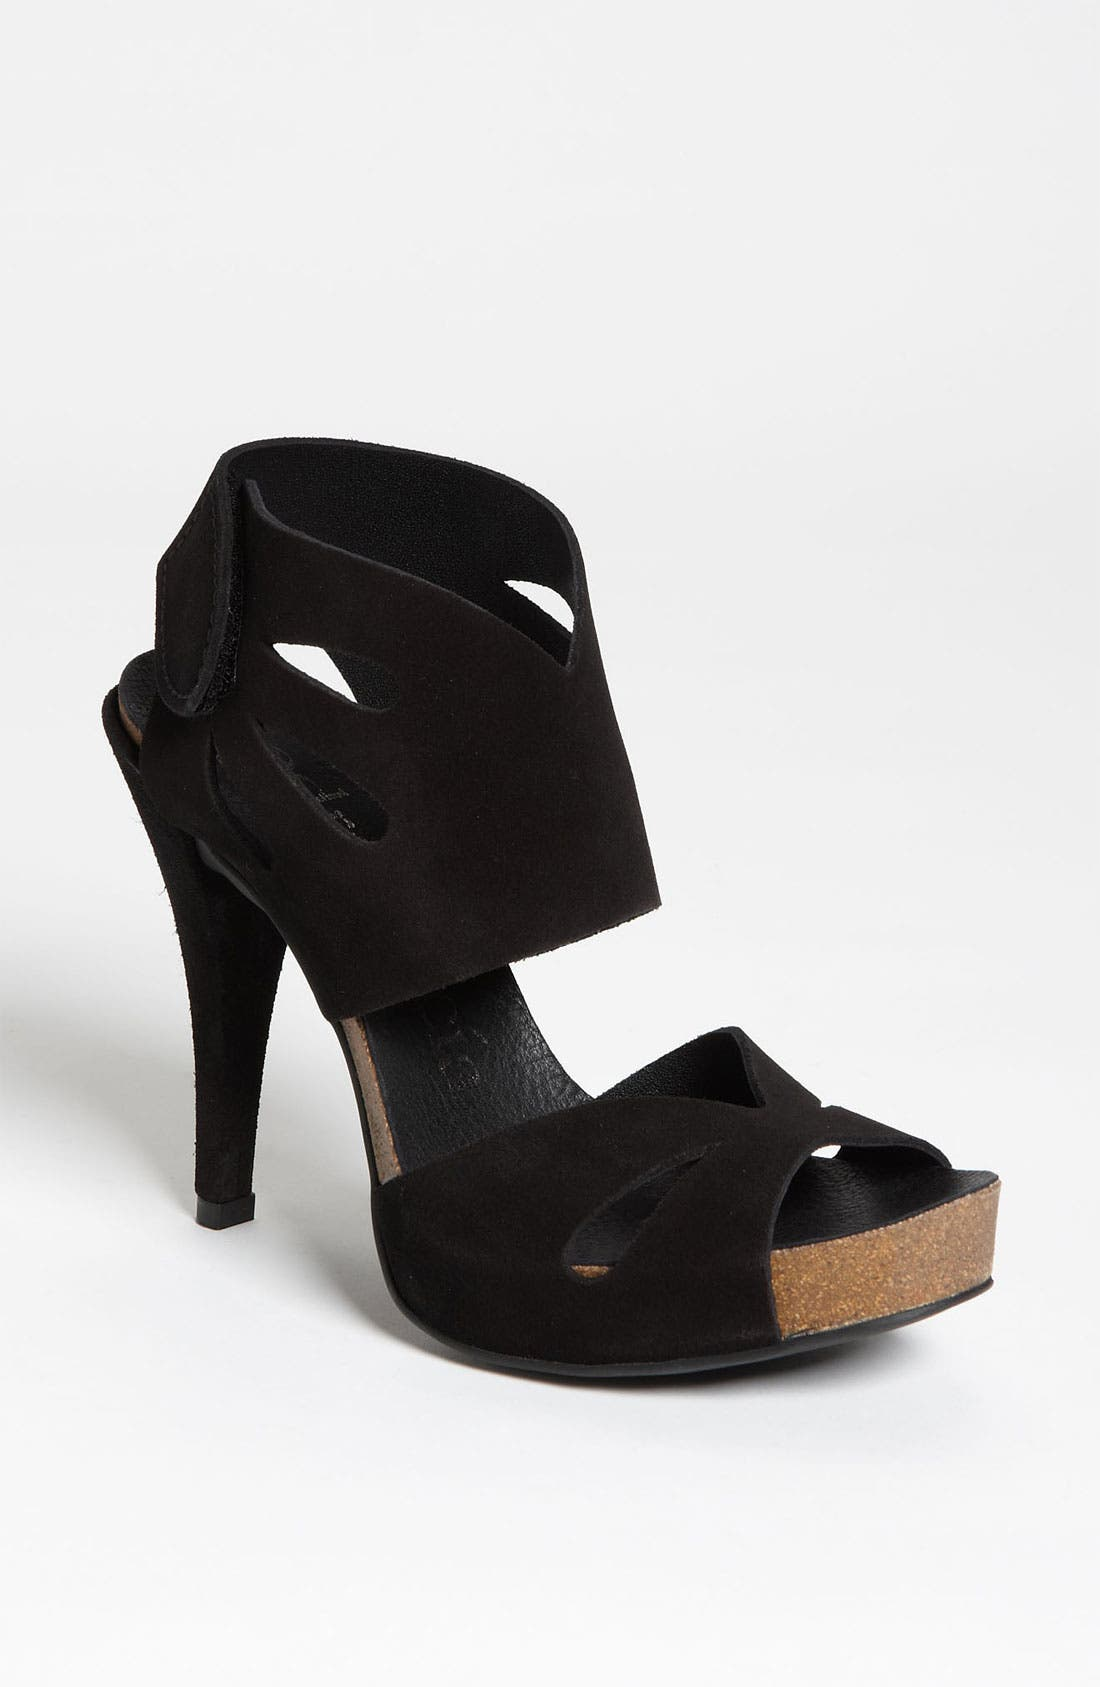 Alternate Image 1 Selected - Pedro Garcia 'Prunella' Sandal